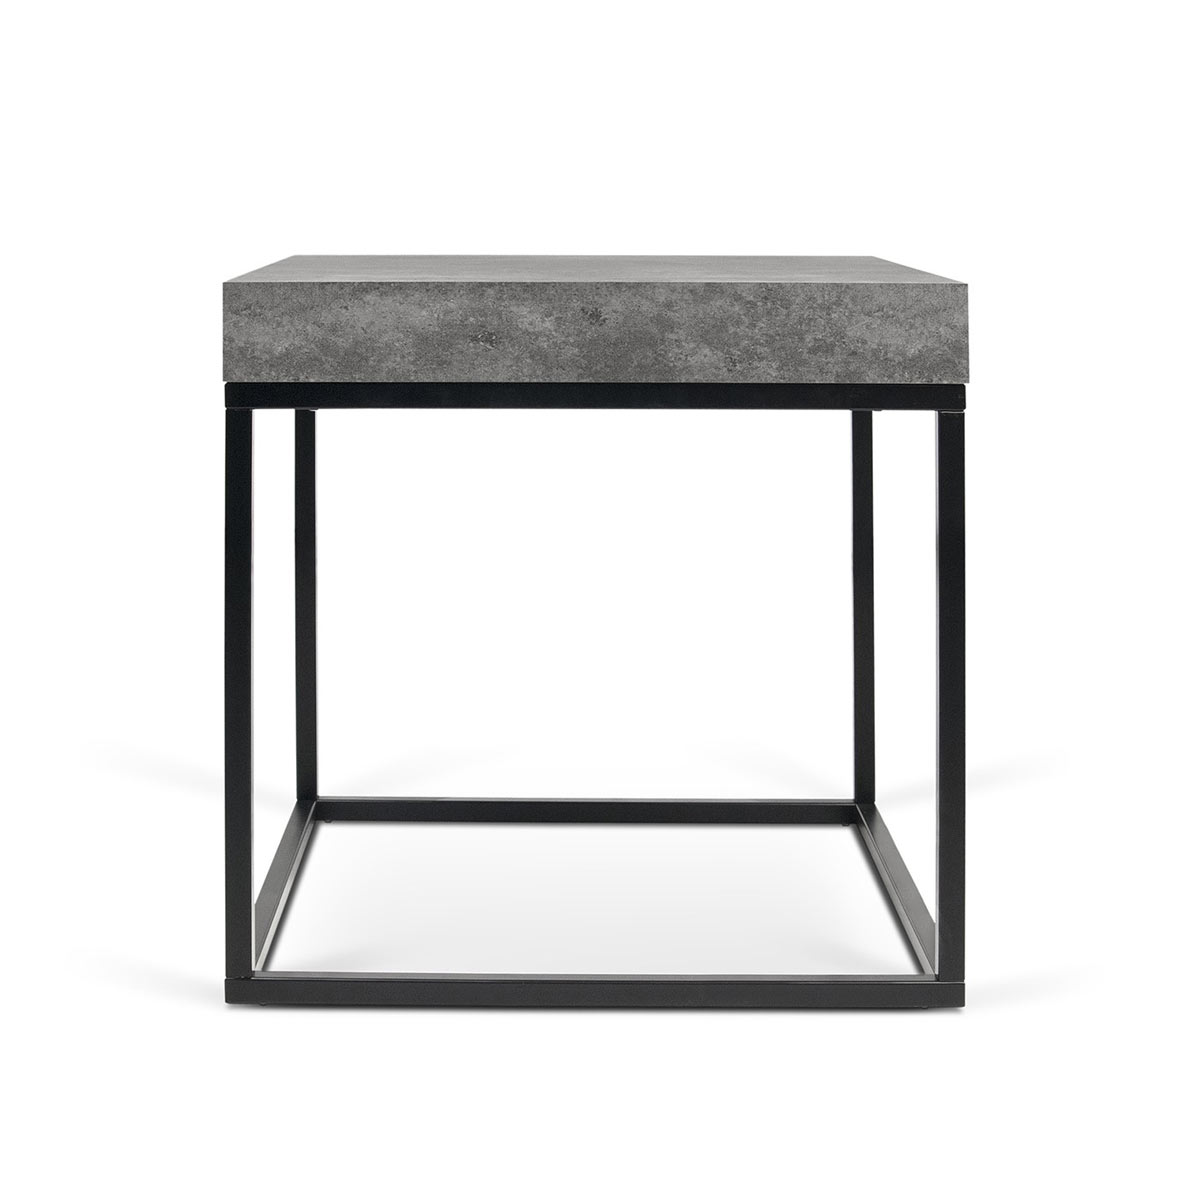 Petra Coffee Table by Temahome